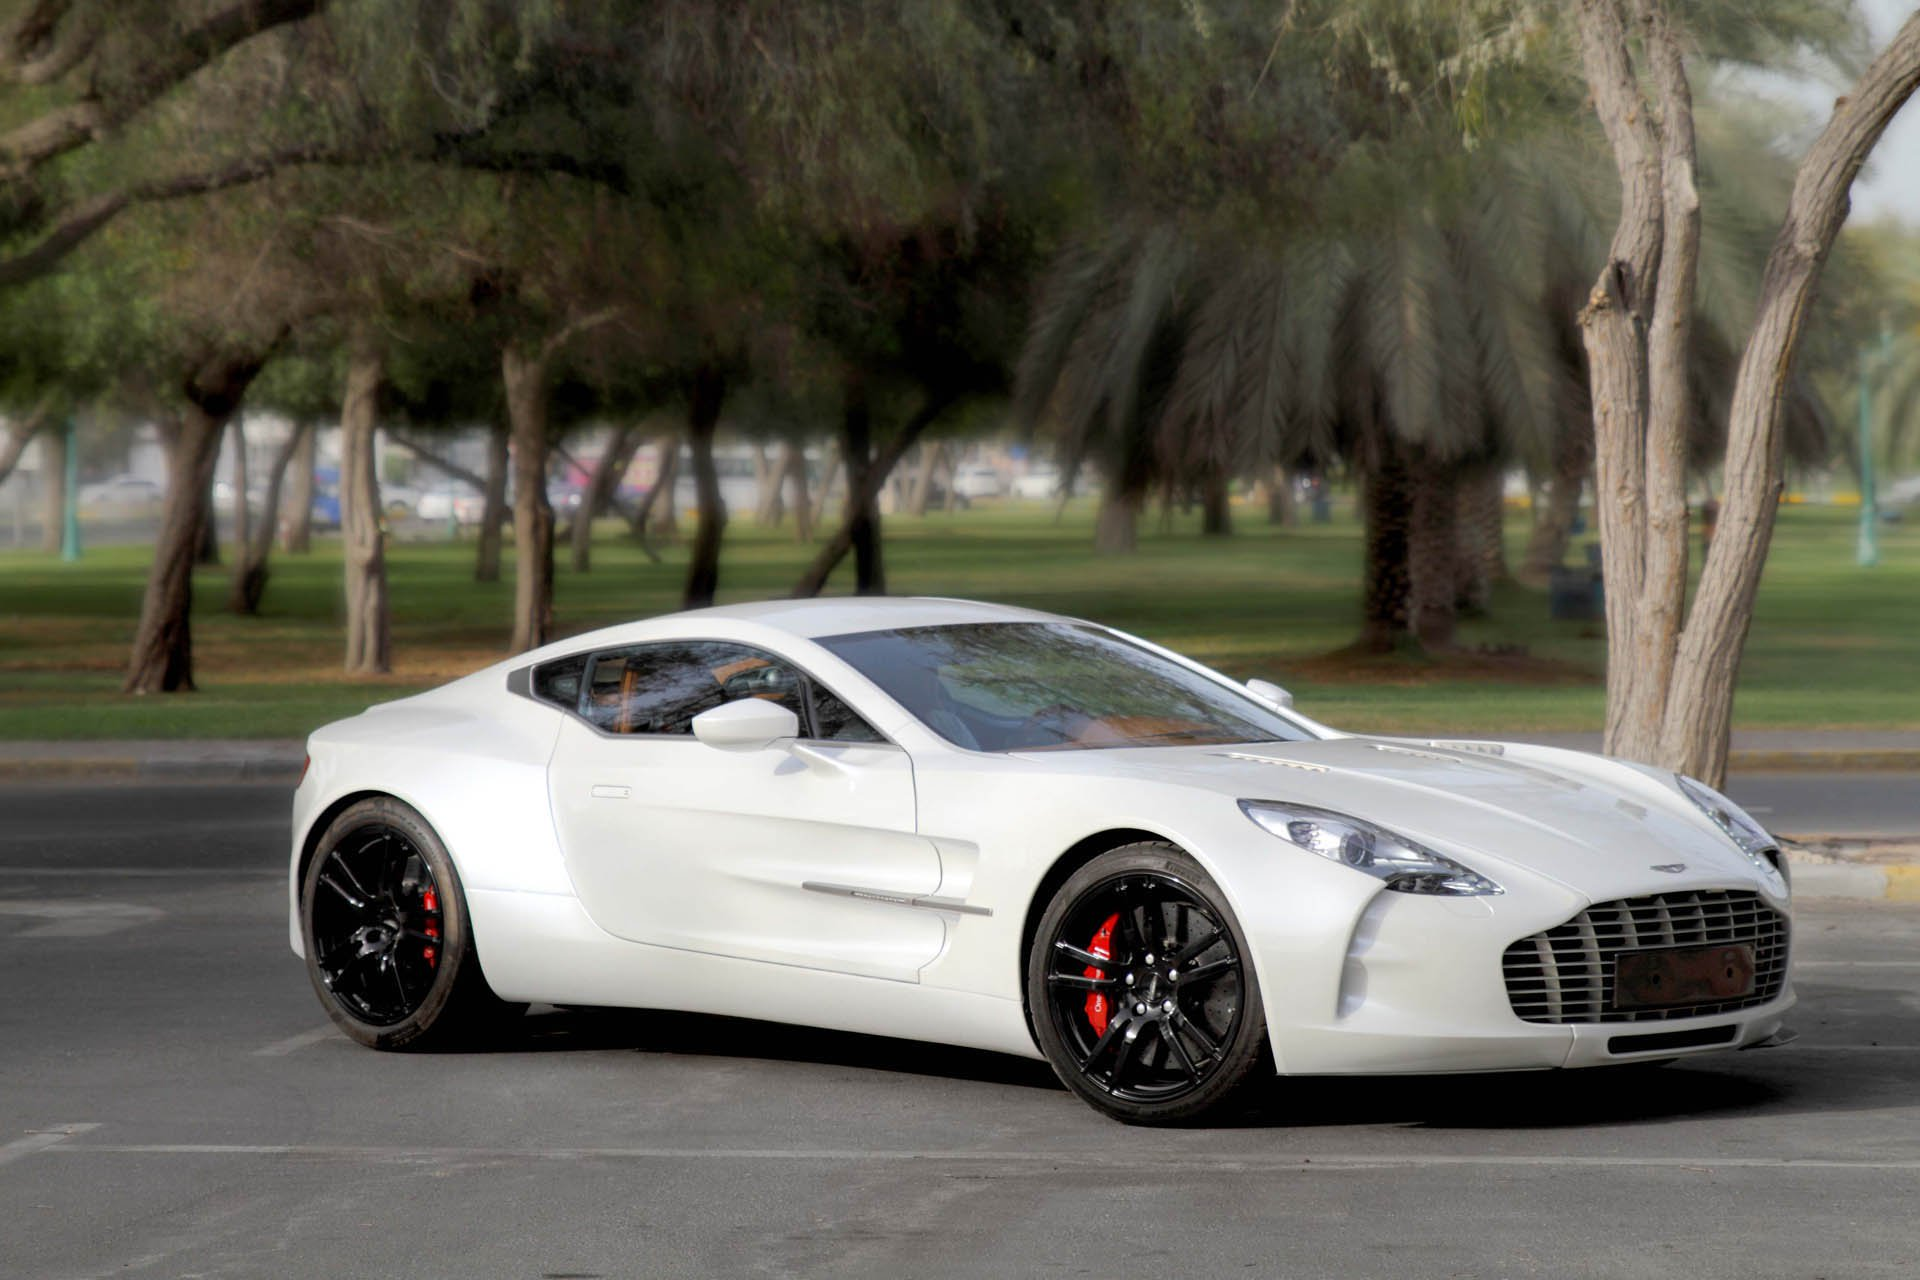 Aston Martin One-77 auction (1)